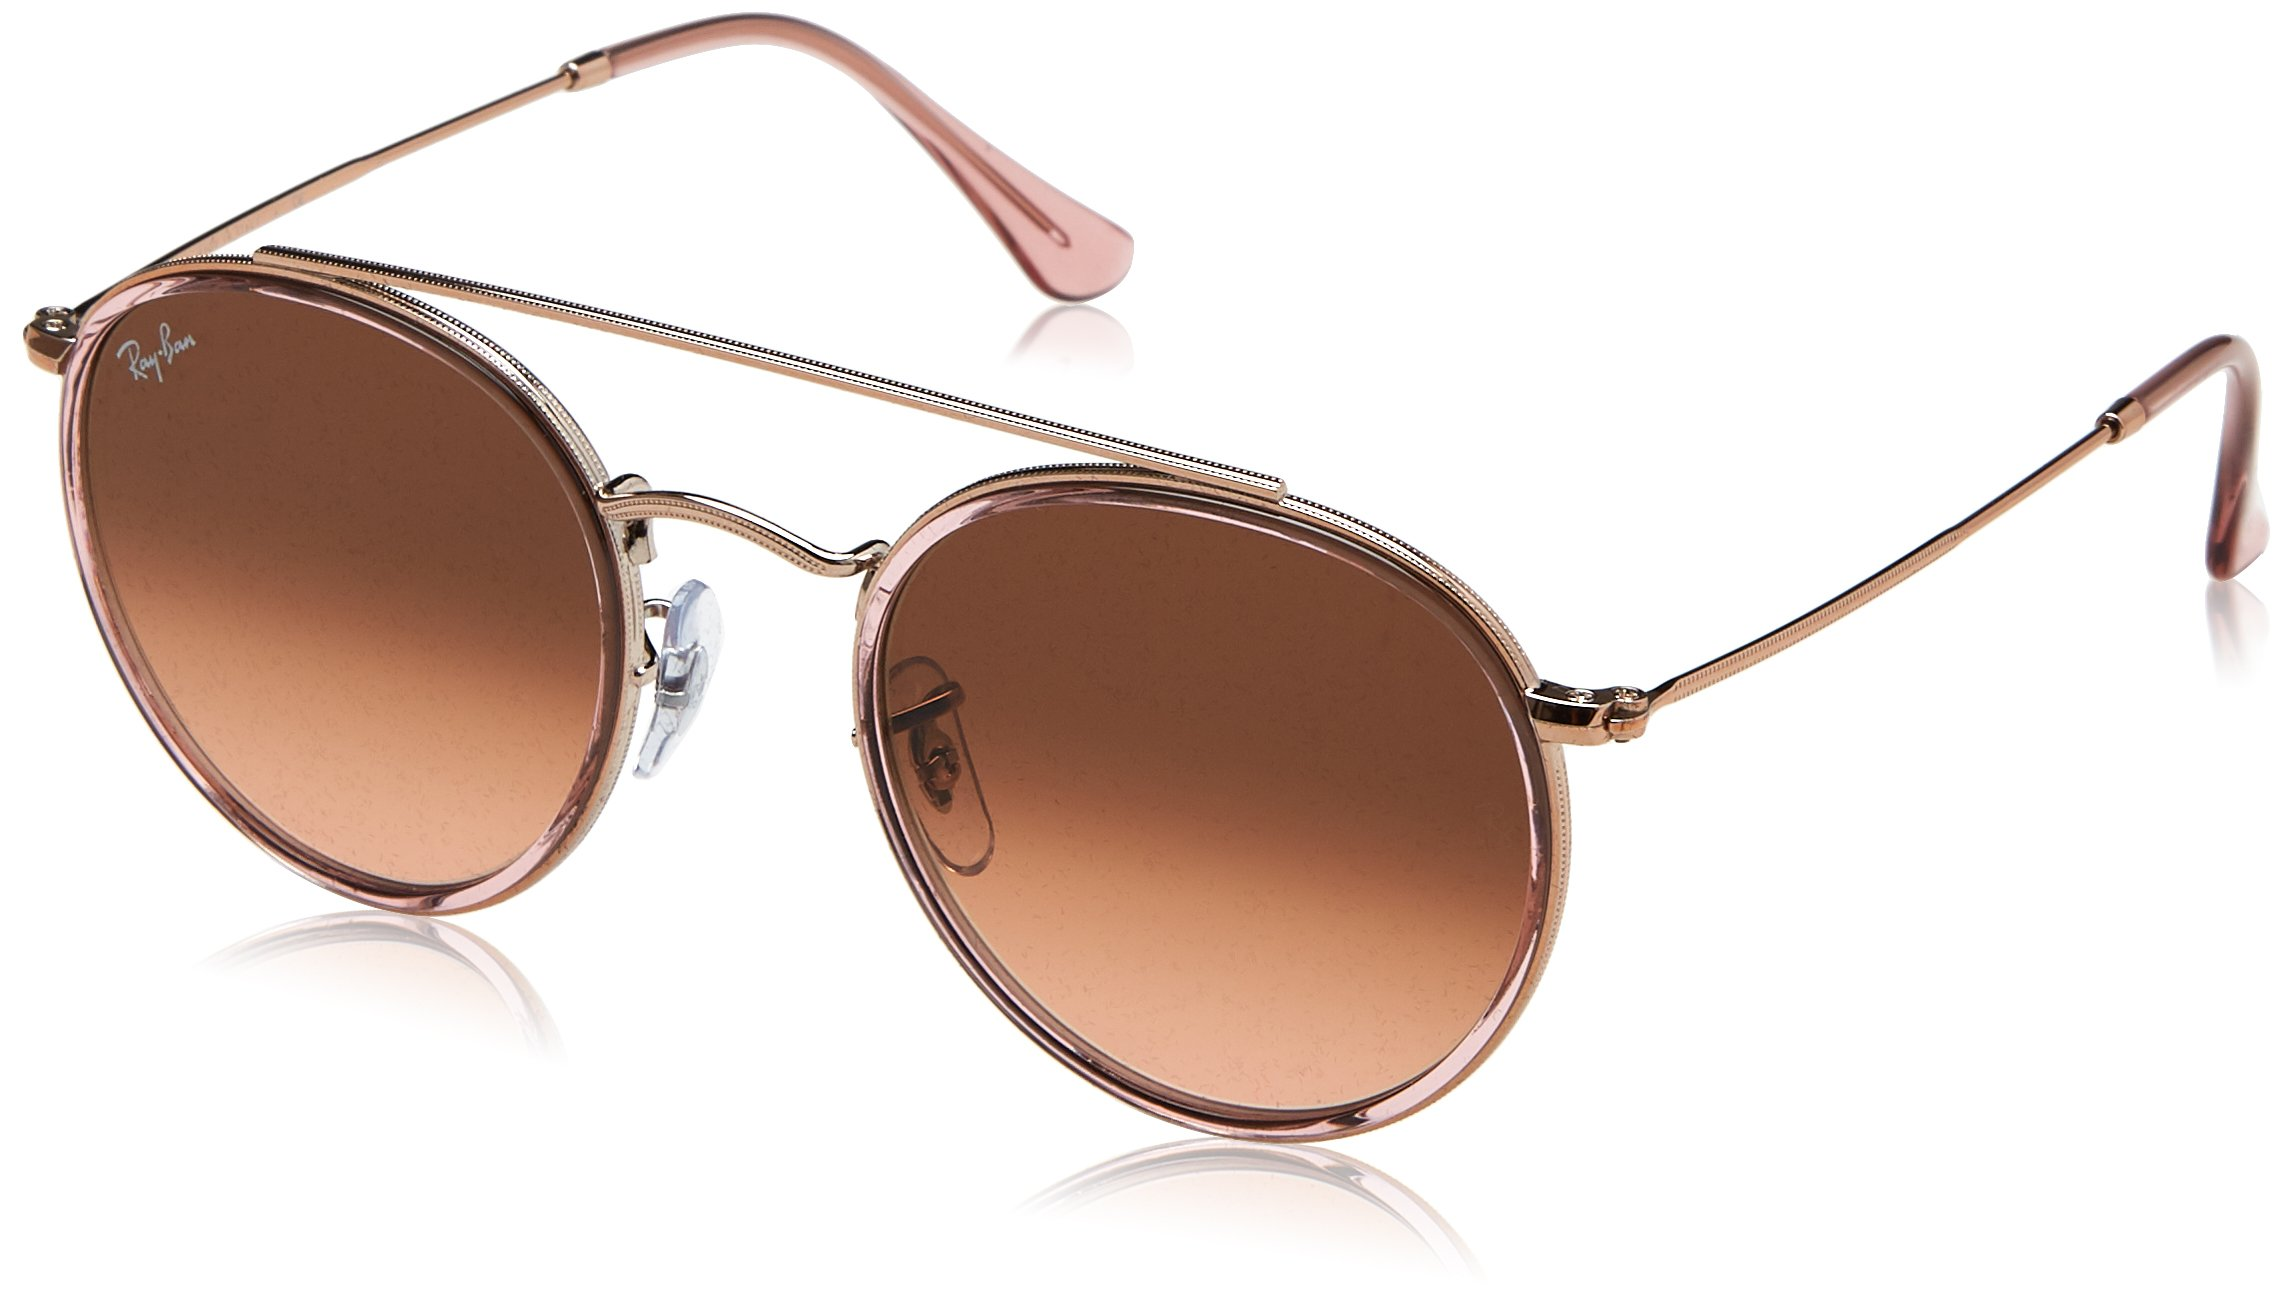 Ray-Ban Metal Unisex Aviator Sunglasses, Pink, 51 mm by Ray-Ban